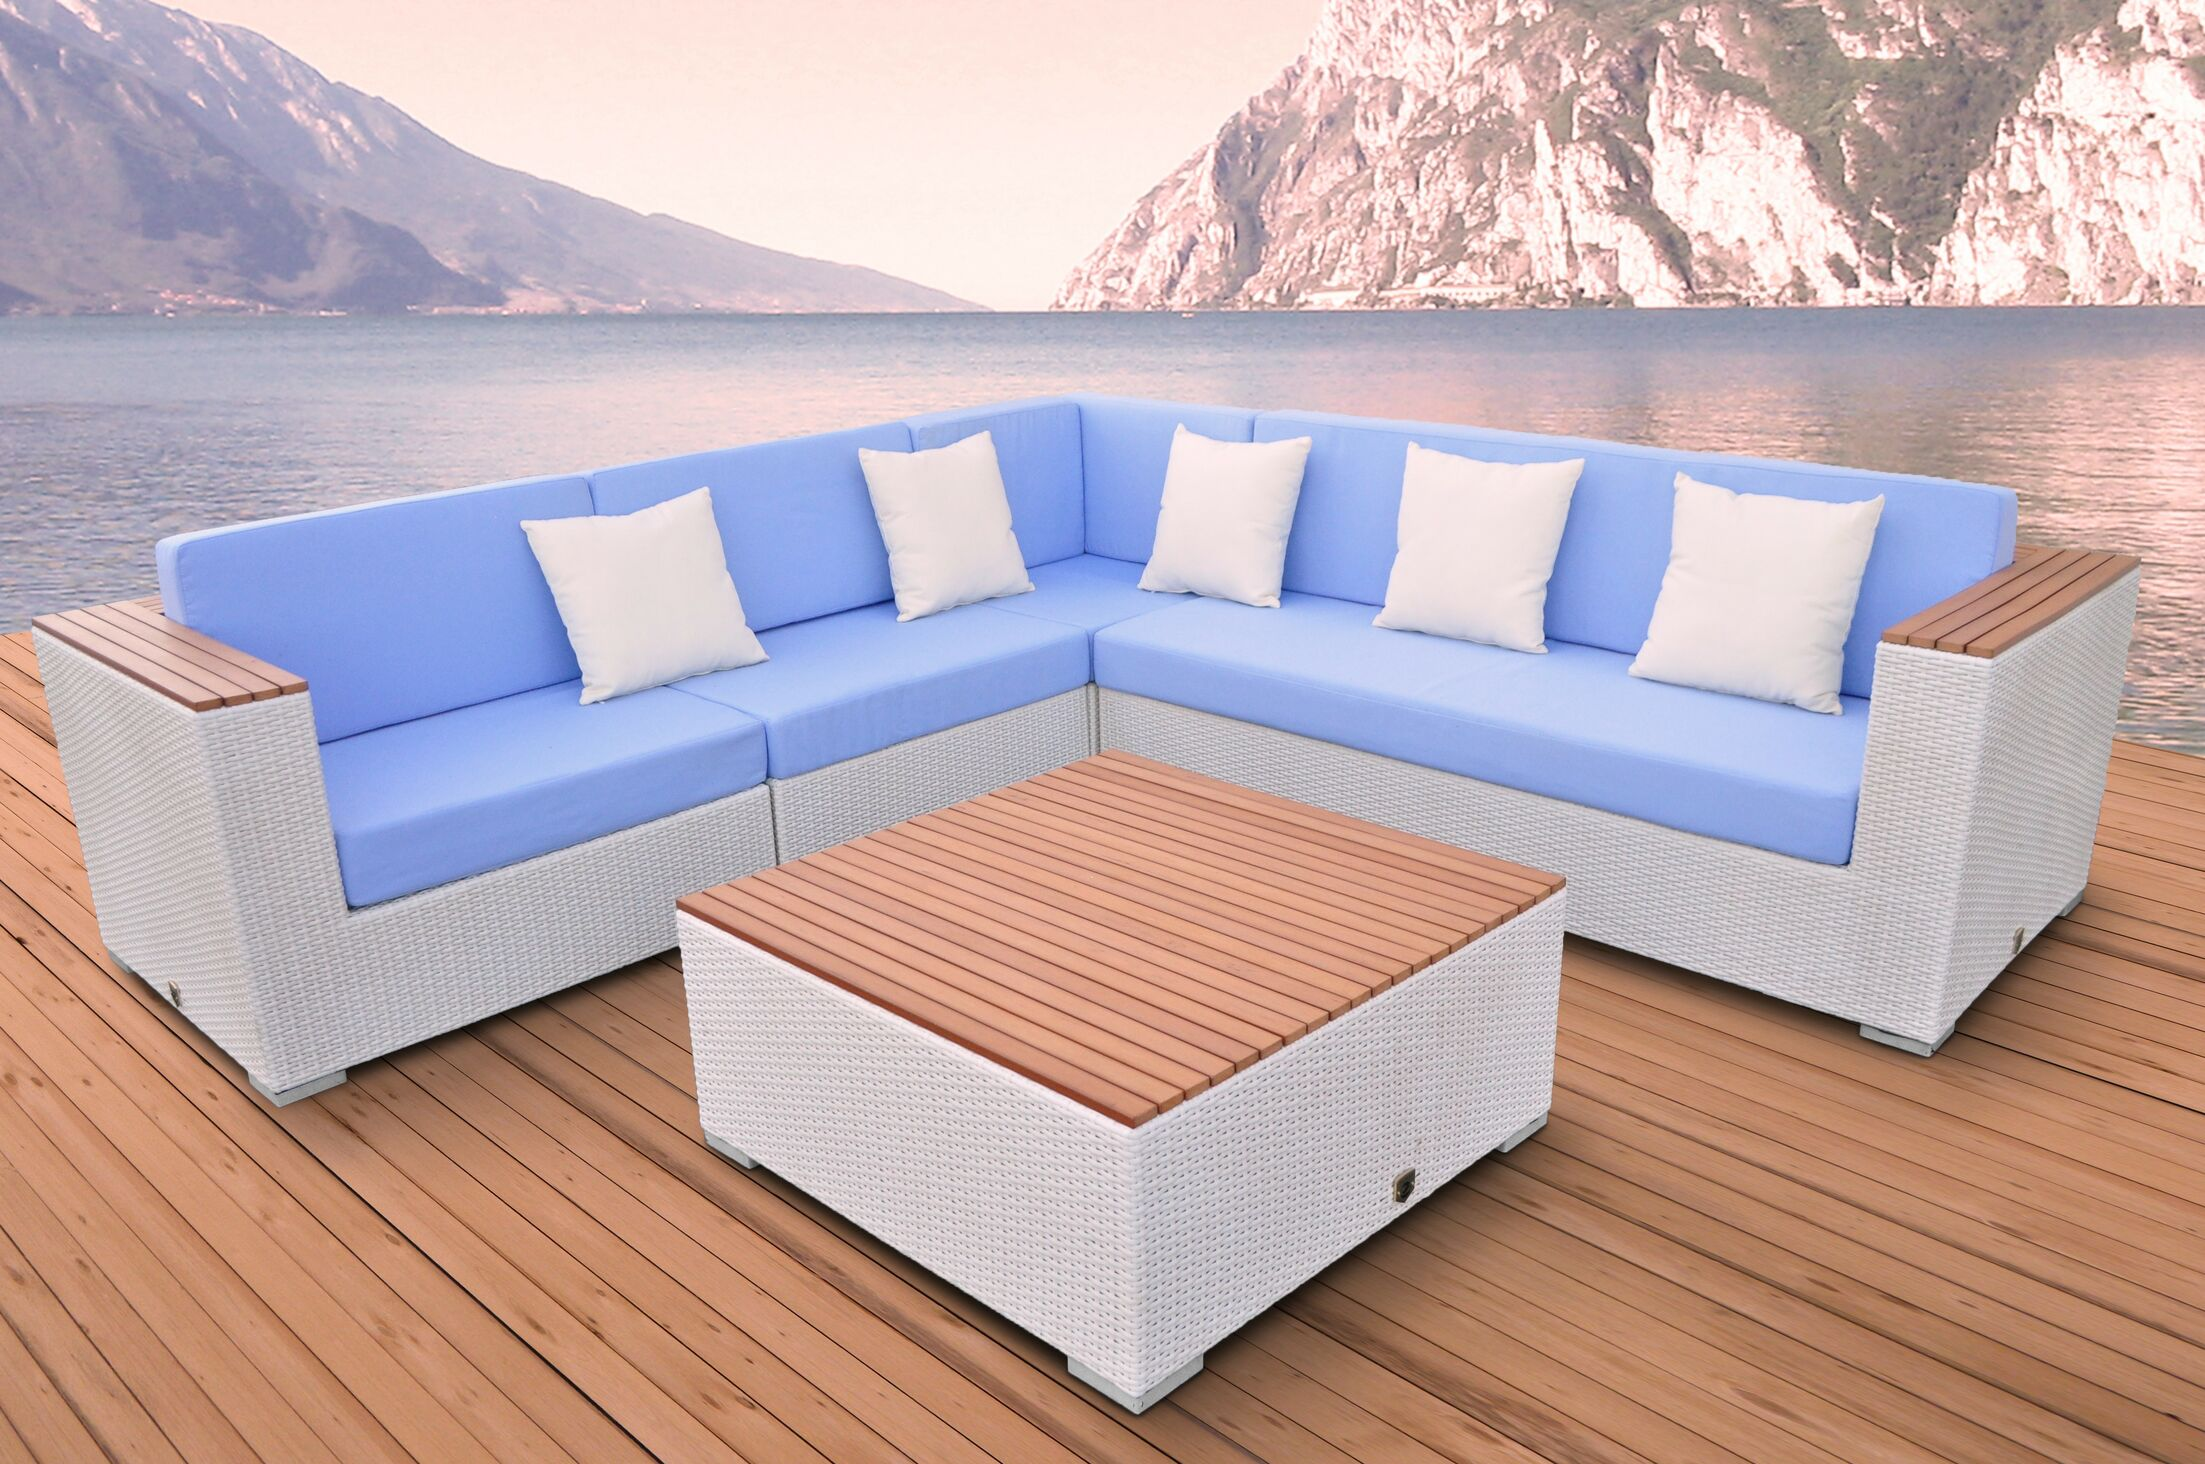 Majestic 5 Piece Rattan Sectional Set with Cushions Fabric: Light Blue